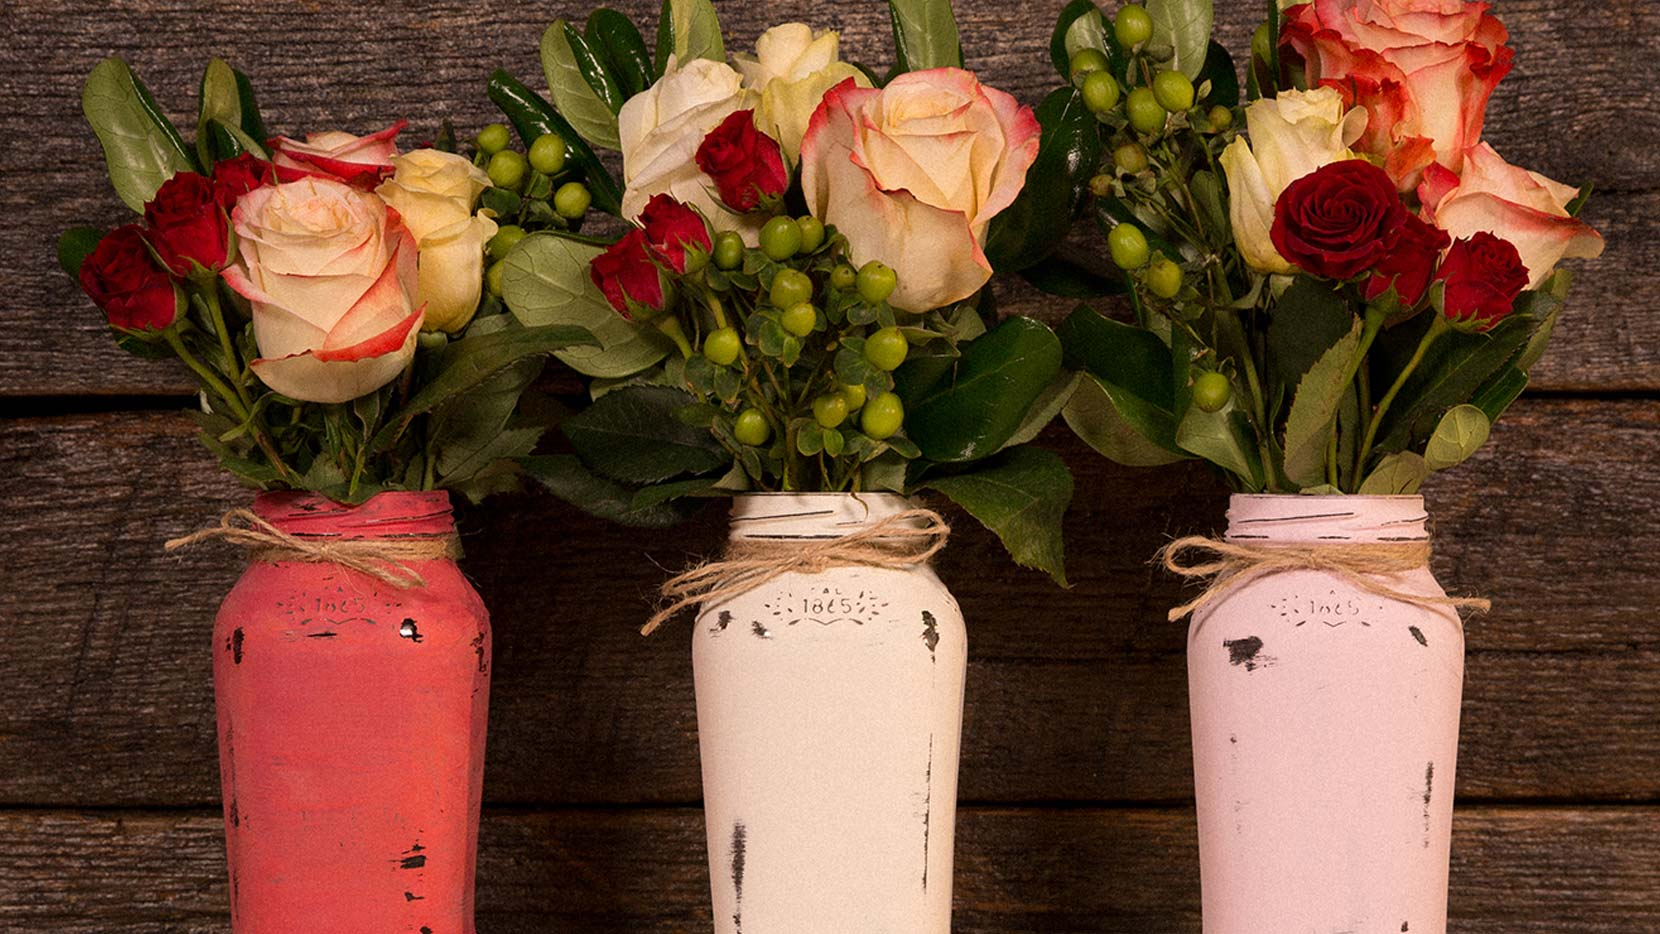 Add roses and place at the center of your Tuscan-inspired table for a simple Valentine's Day vase.